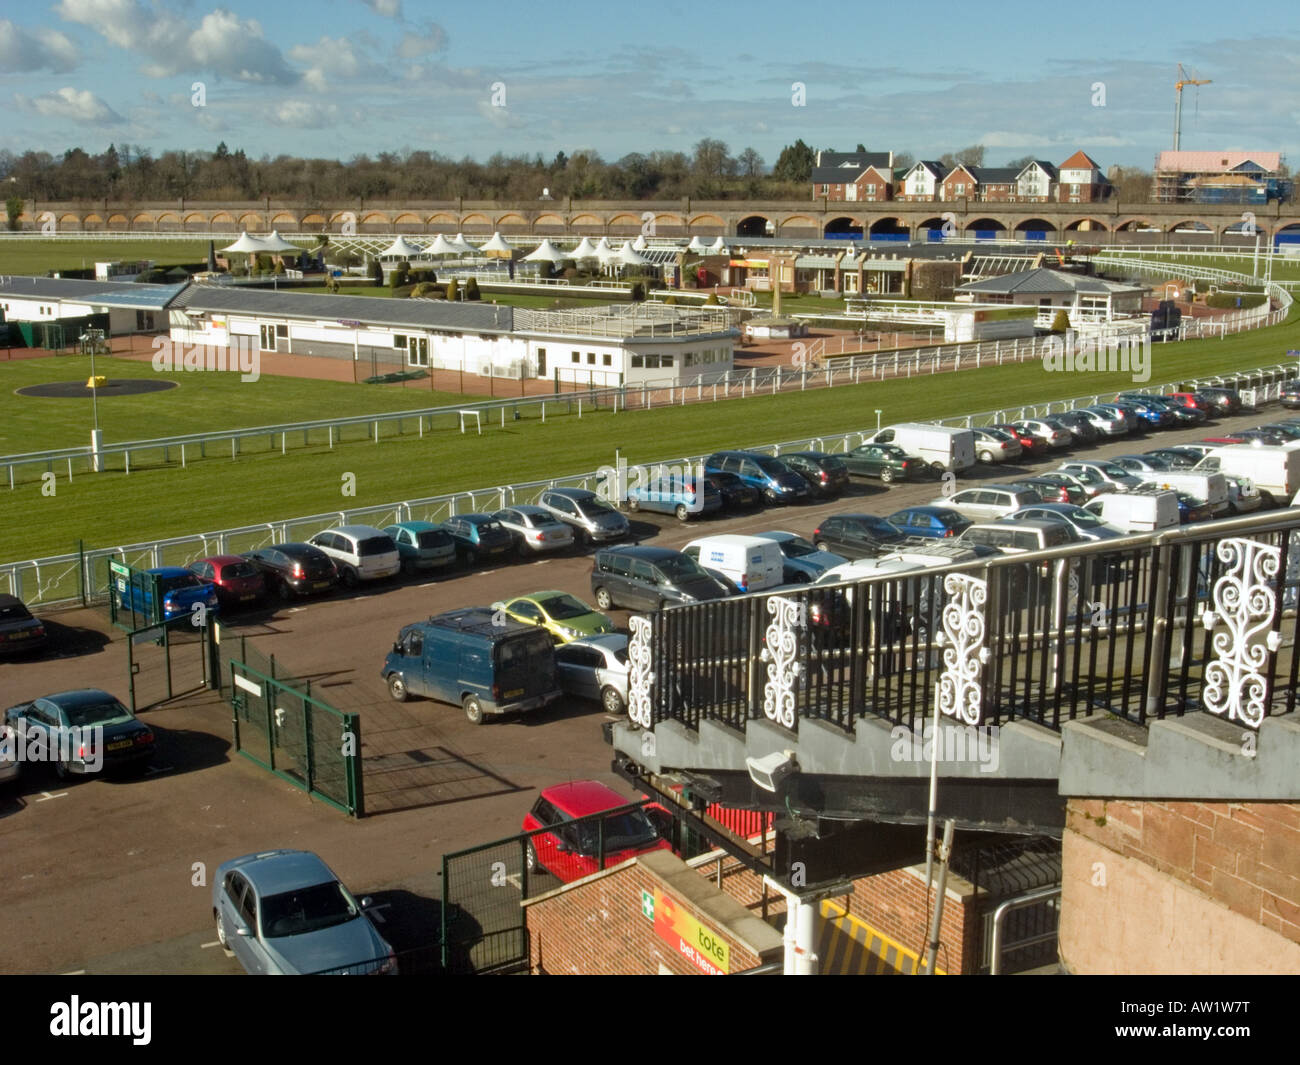 The Roodee, Chester Racecourse - Stock Image